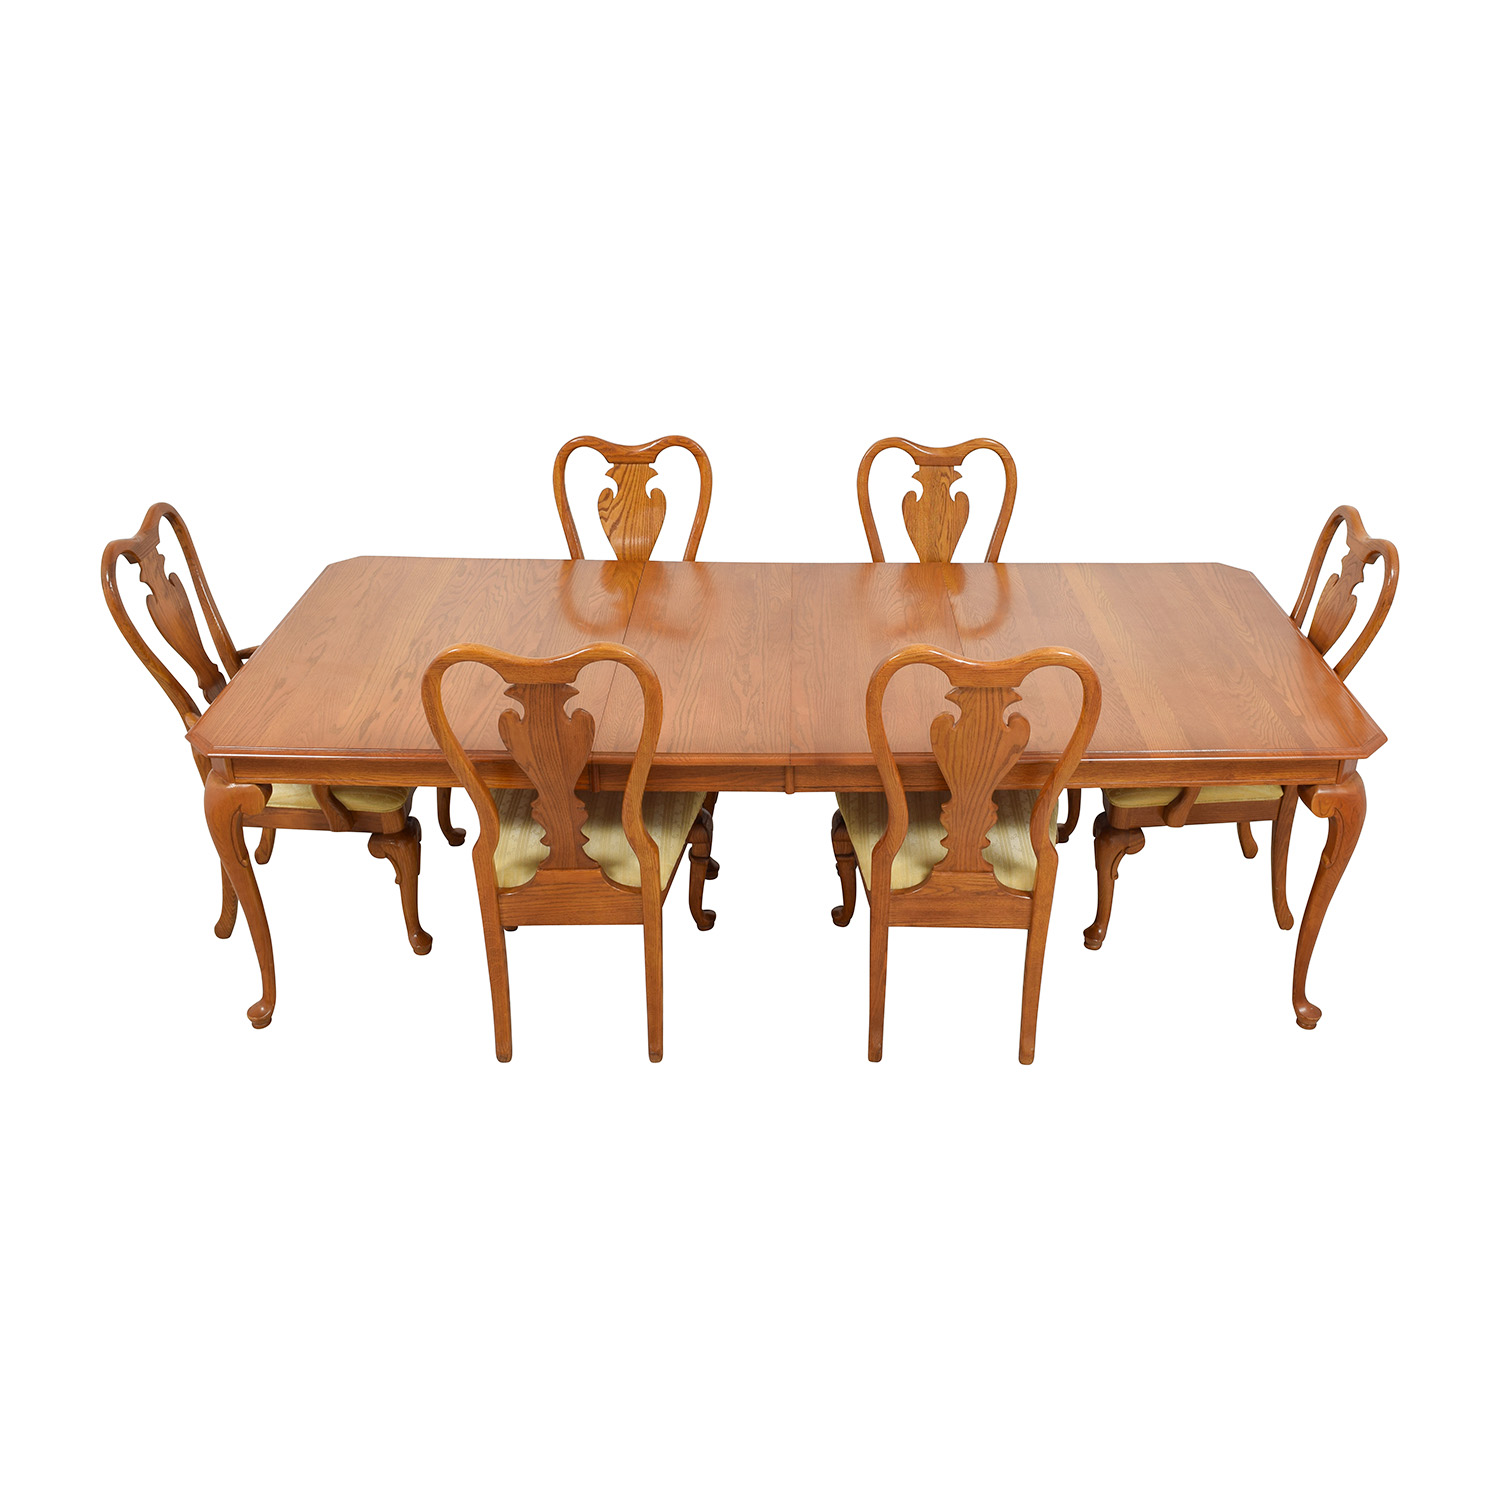 Classic Six-Piece Wooden Dining Set dimensions